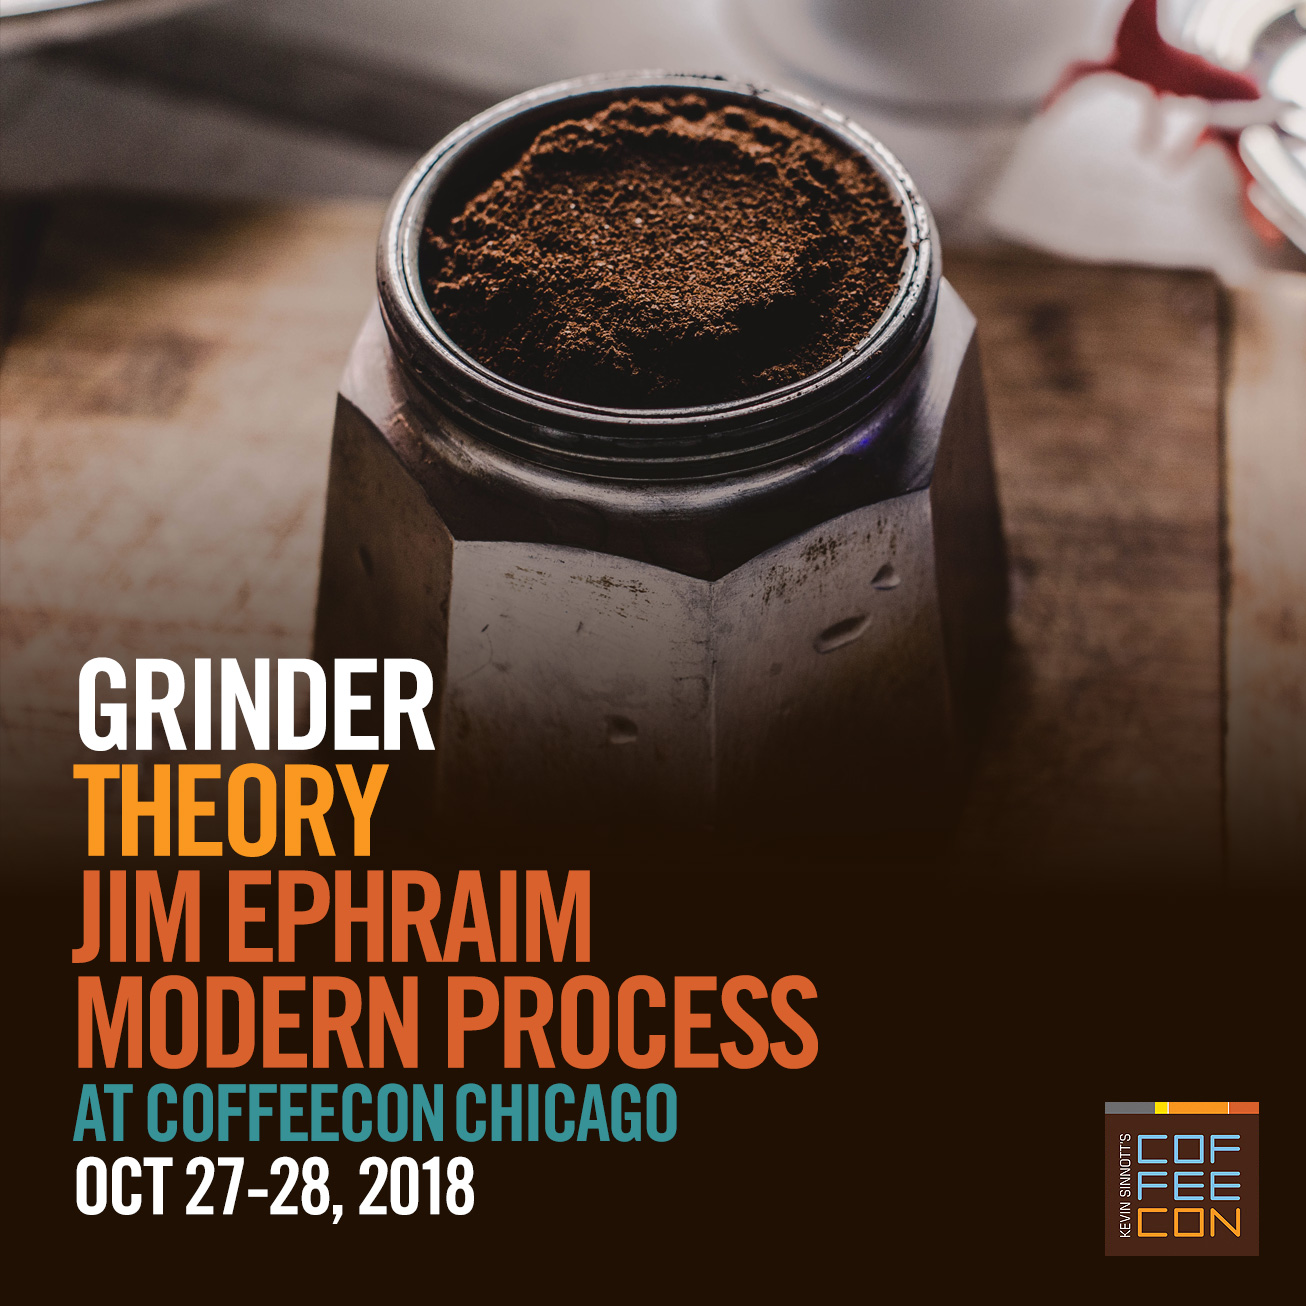 Grinder Theory with Modern Process